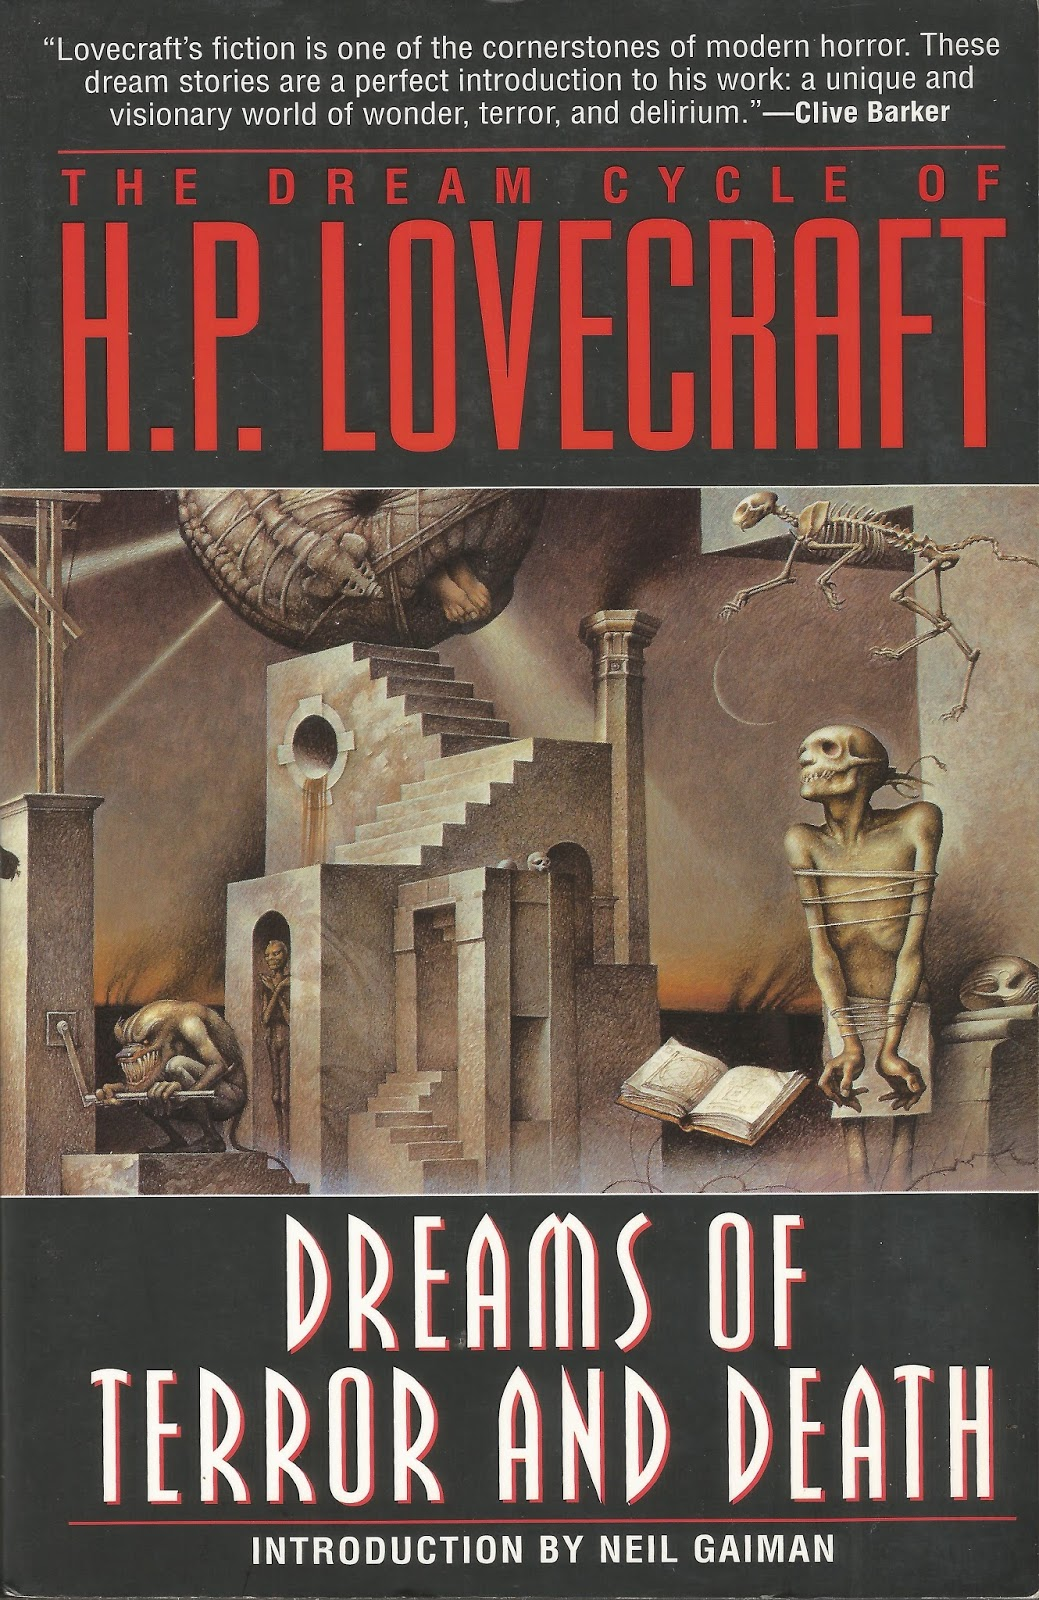 The Truth Inside The Lie: Considering H P  Lovecraft, Part 2